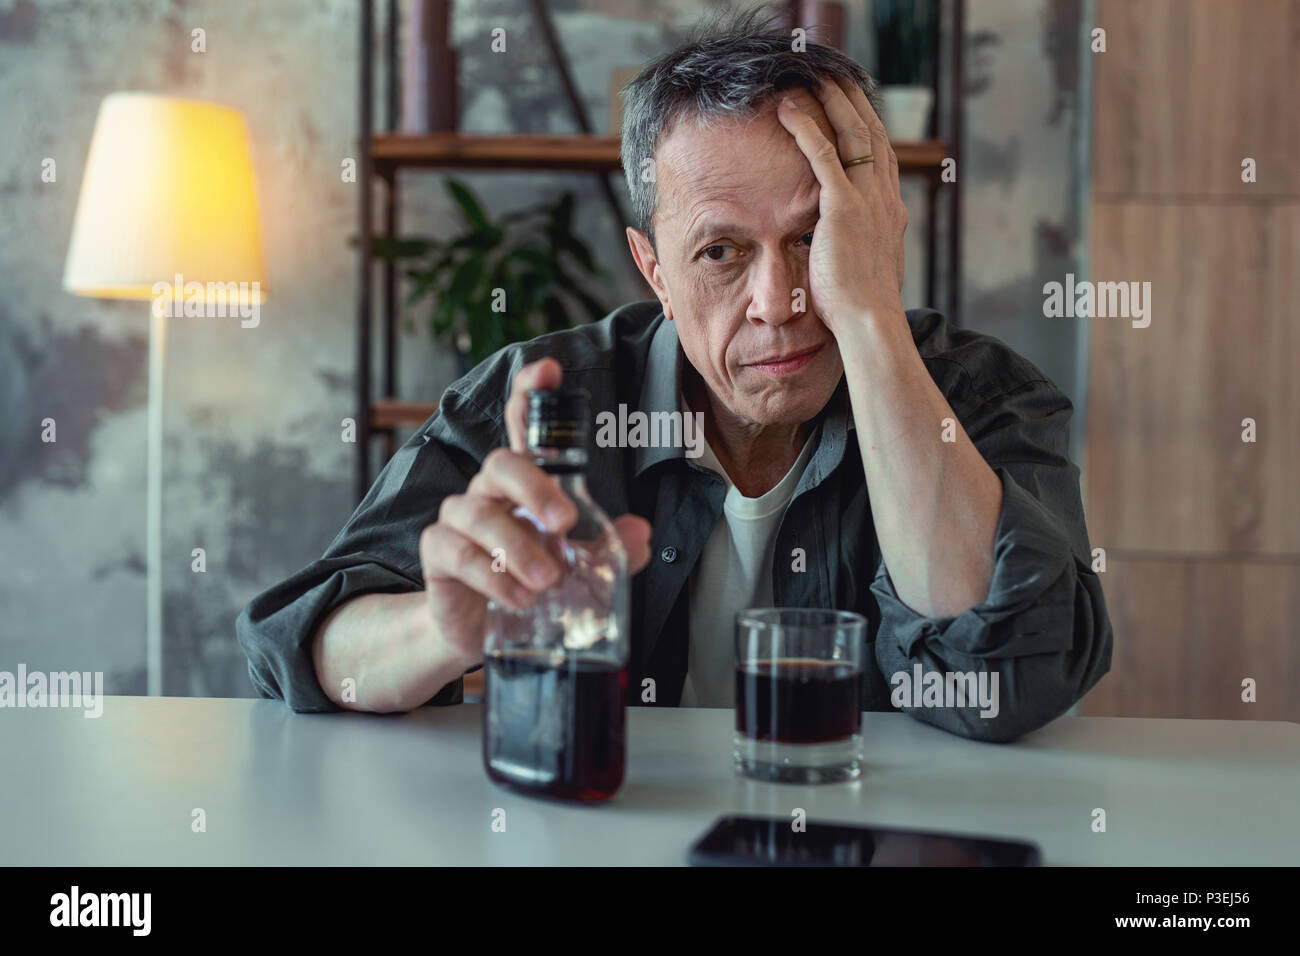 Mature man drinking whisky after divorce - Stock Image